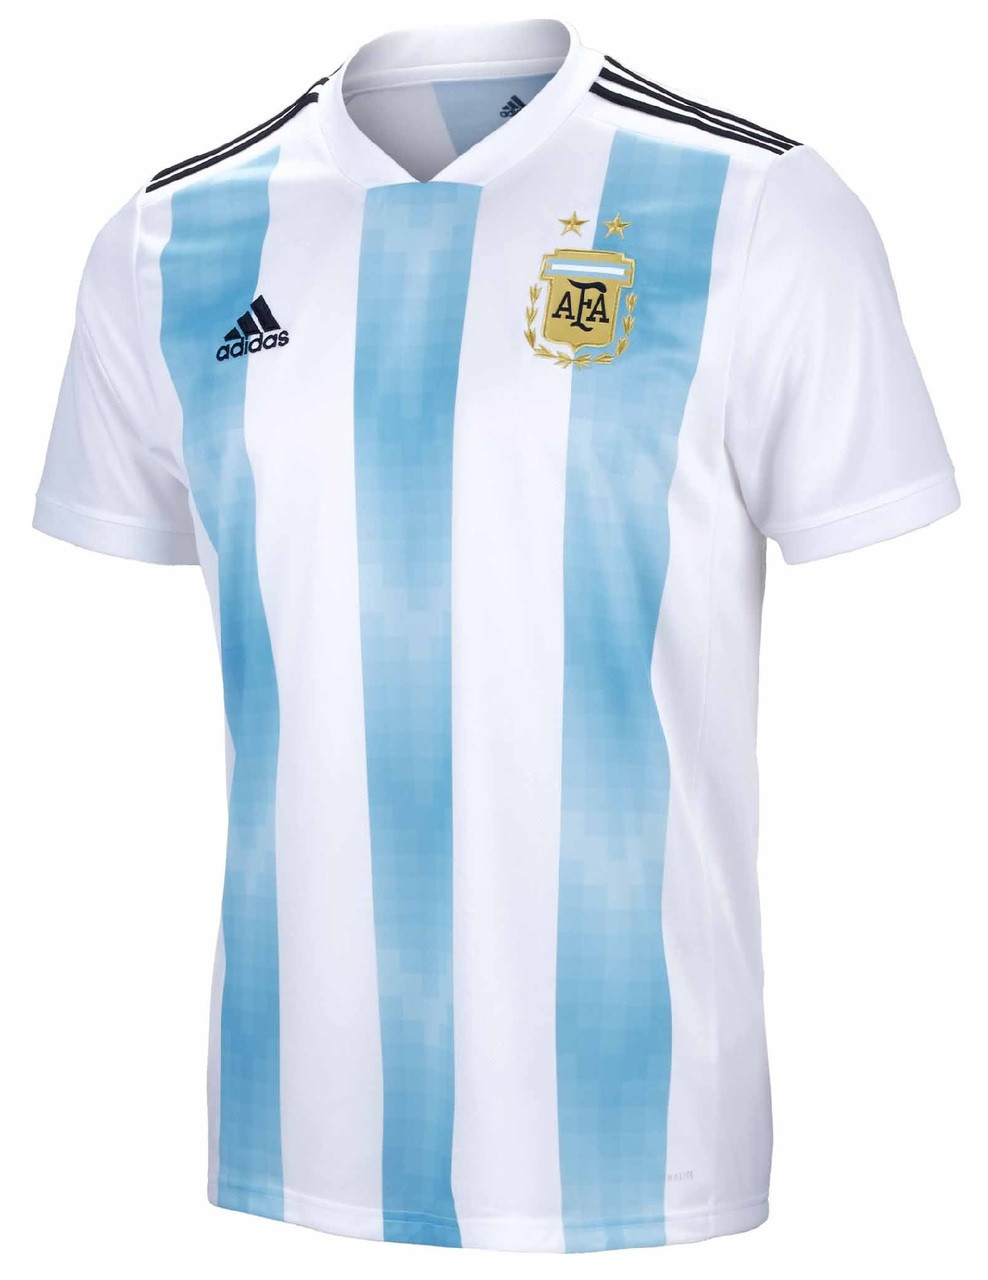 db47e8493 adidas Argentina World Cup 2017 18 Home Jersey - White Clear Blue Black ( 111117) - ohp soccer